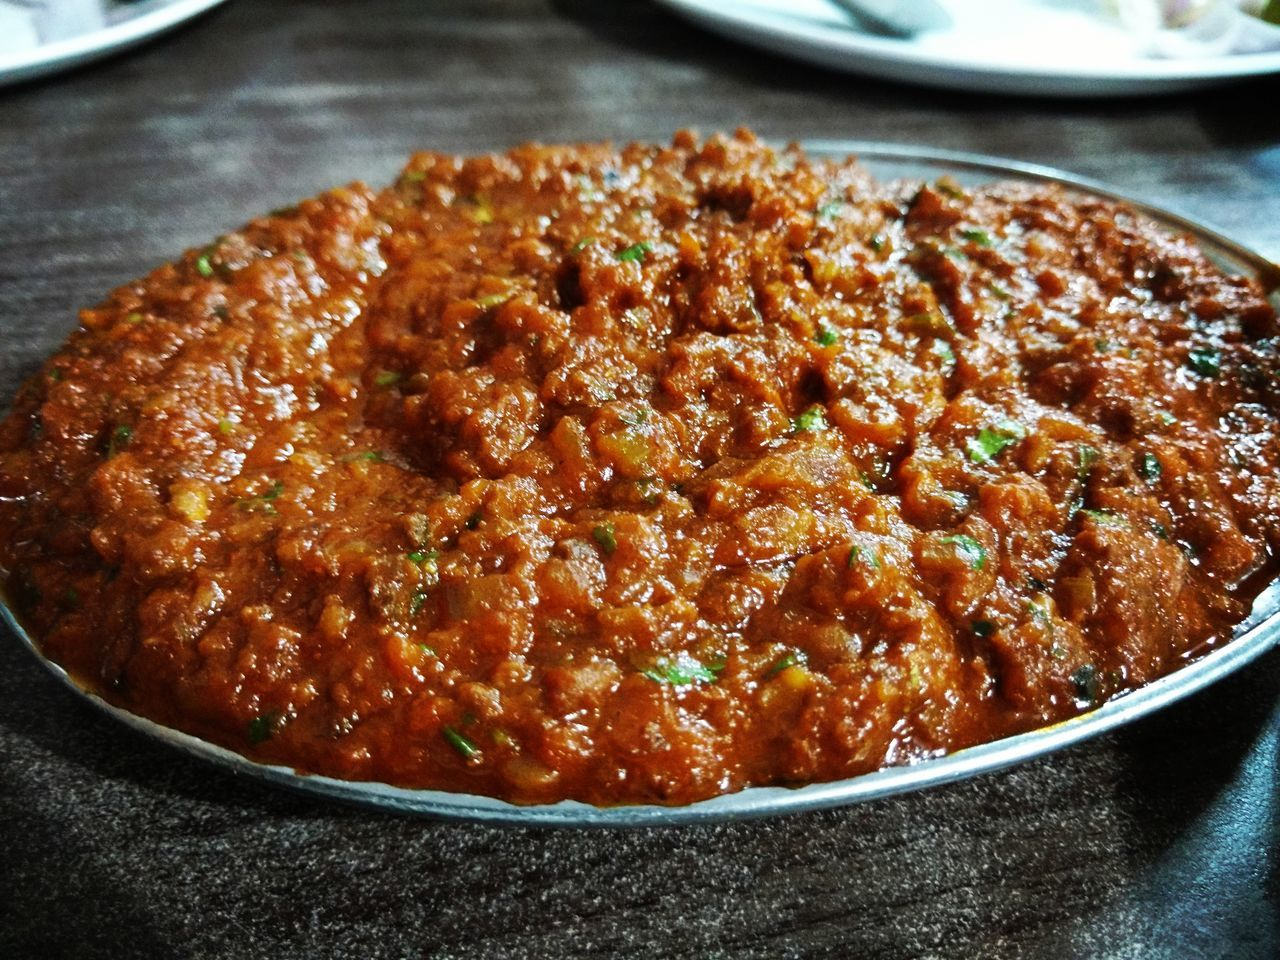 Delicious chicken kheema at Cafe Goodluck -Pune. Food Food And Drink Ready-to-eat Puneinstagrammers Puneclicksarts Punevibes Punediaries Puneclicks Pune Puneclickarts Punefood Punefoodie Puneinstagrammer Foodphotography Foodpics